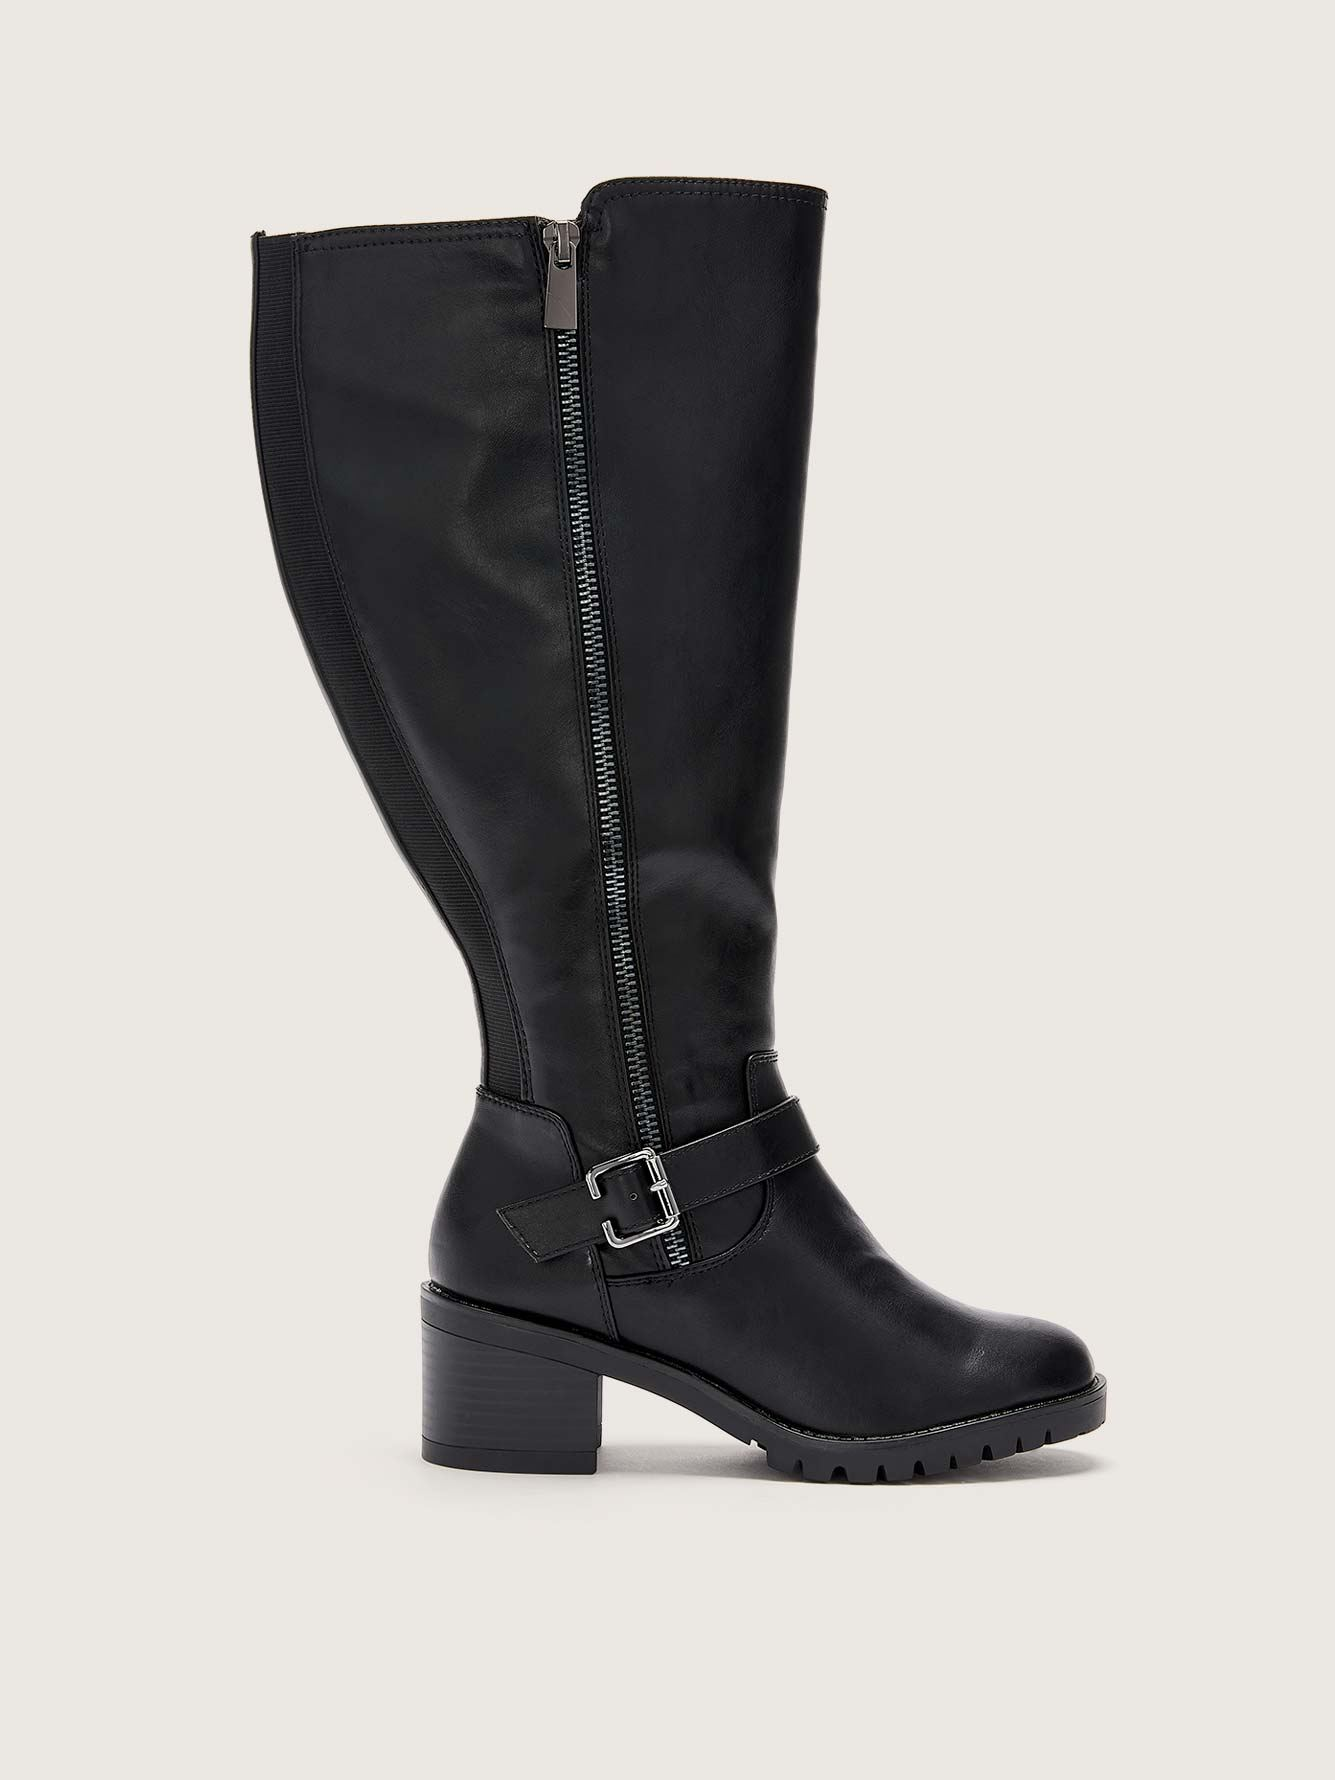 Water Resistant Tall Boot with Ankle Strap - Addition Elle